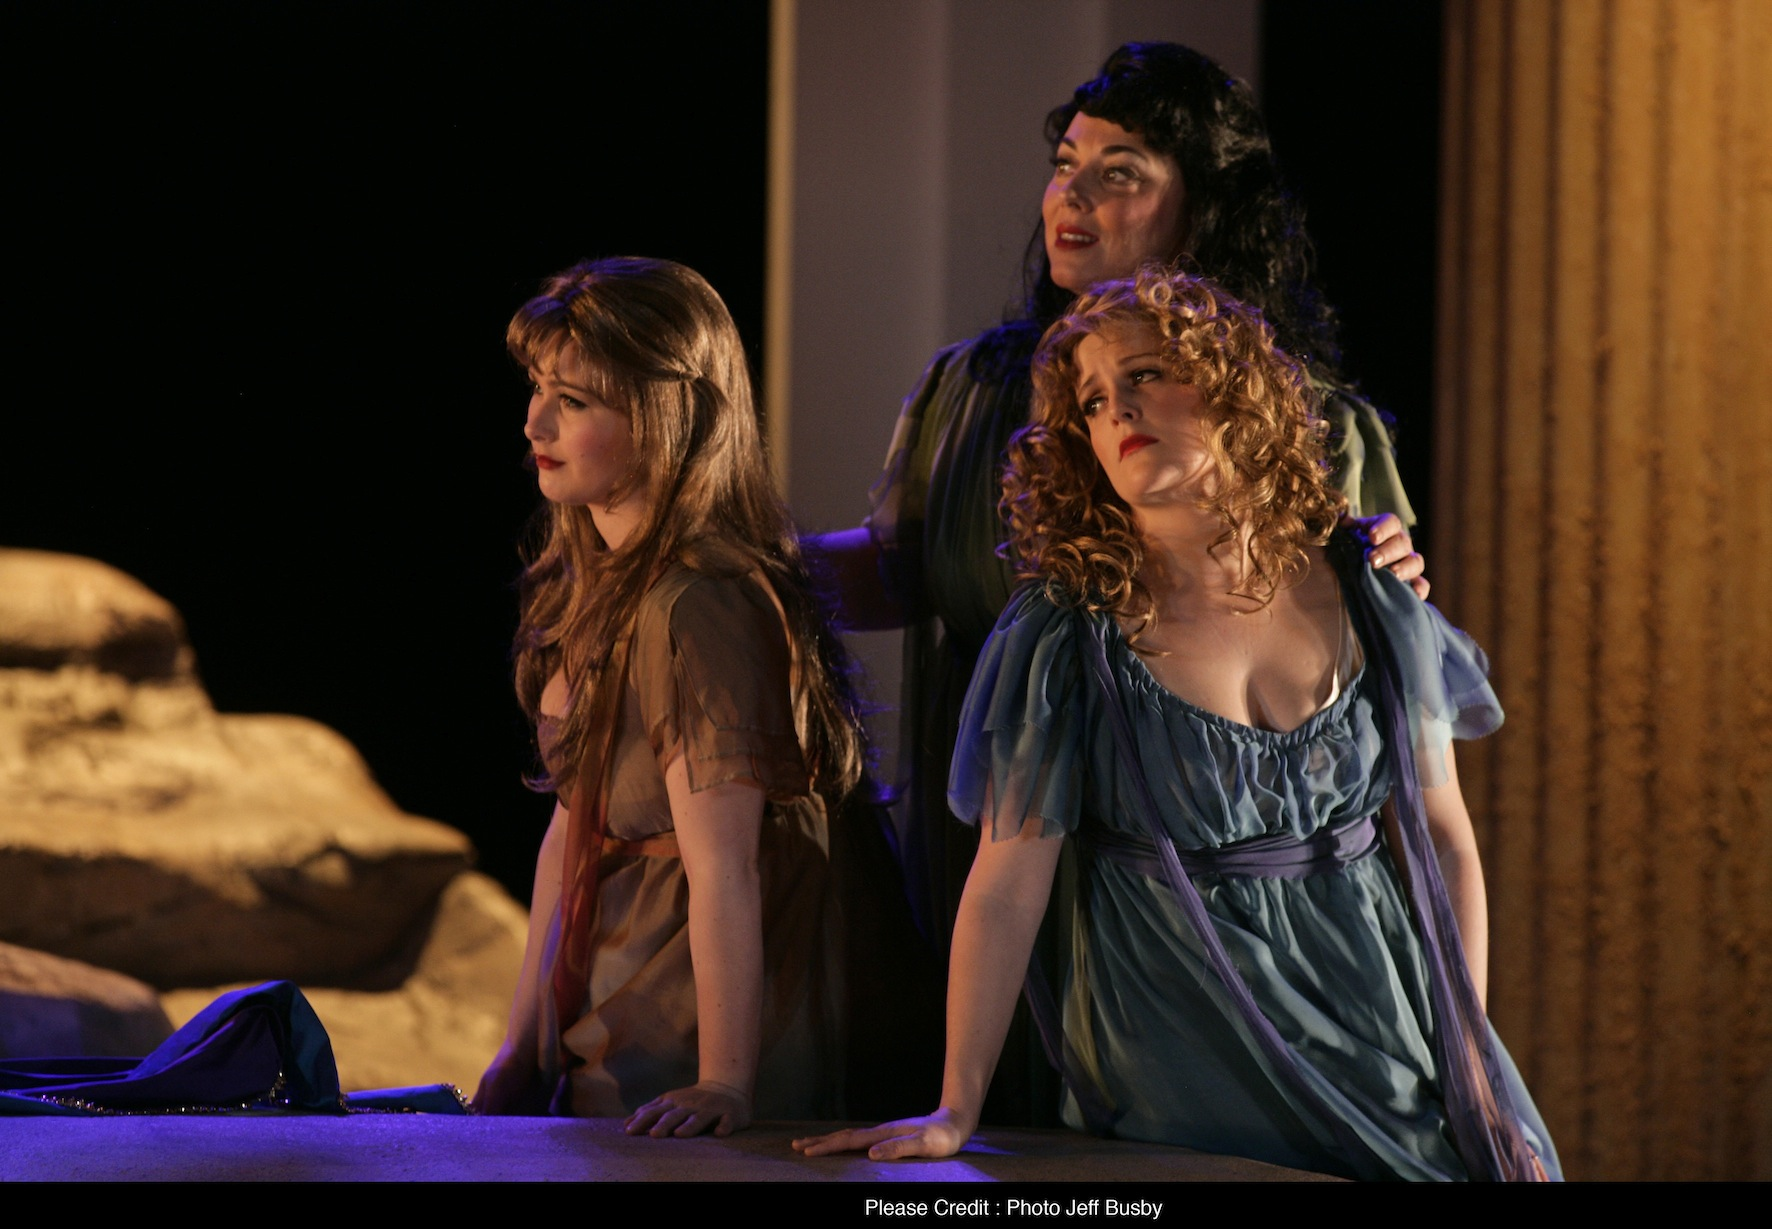 Victorian Opera (Melbourne 2009, Photograph copyright Jeff Busby)